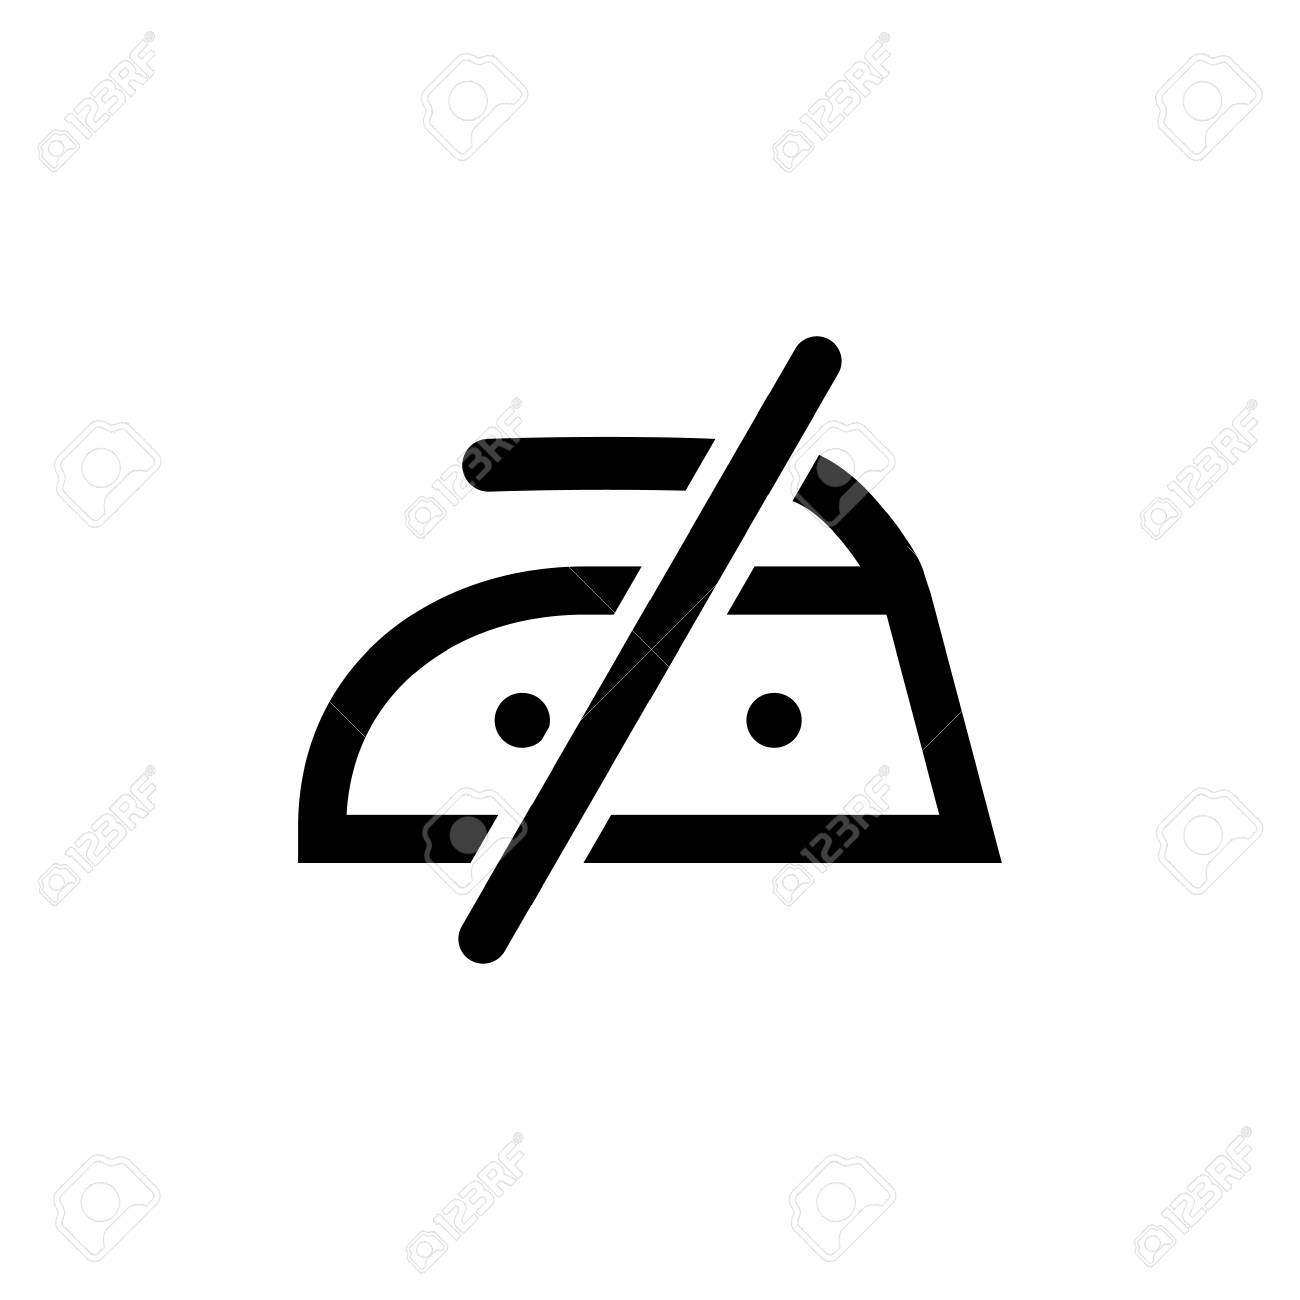 Do Not Iron Vector Icon Royalty Free Cliparts Vectors And Stock